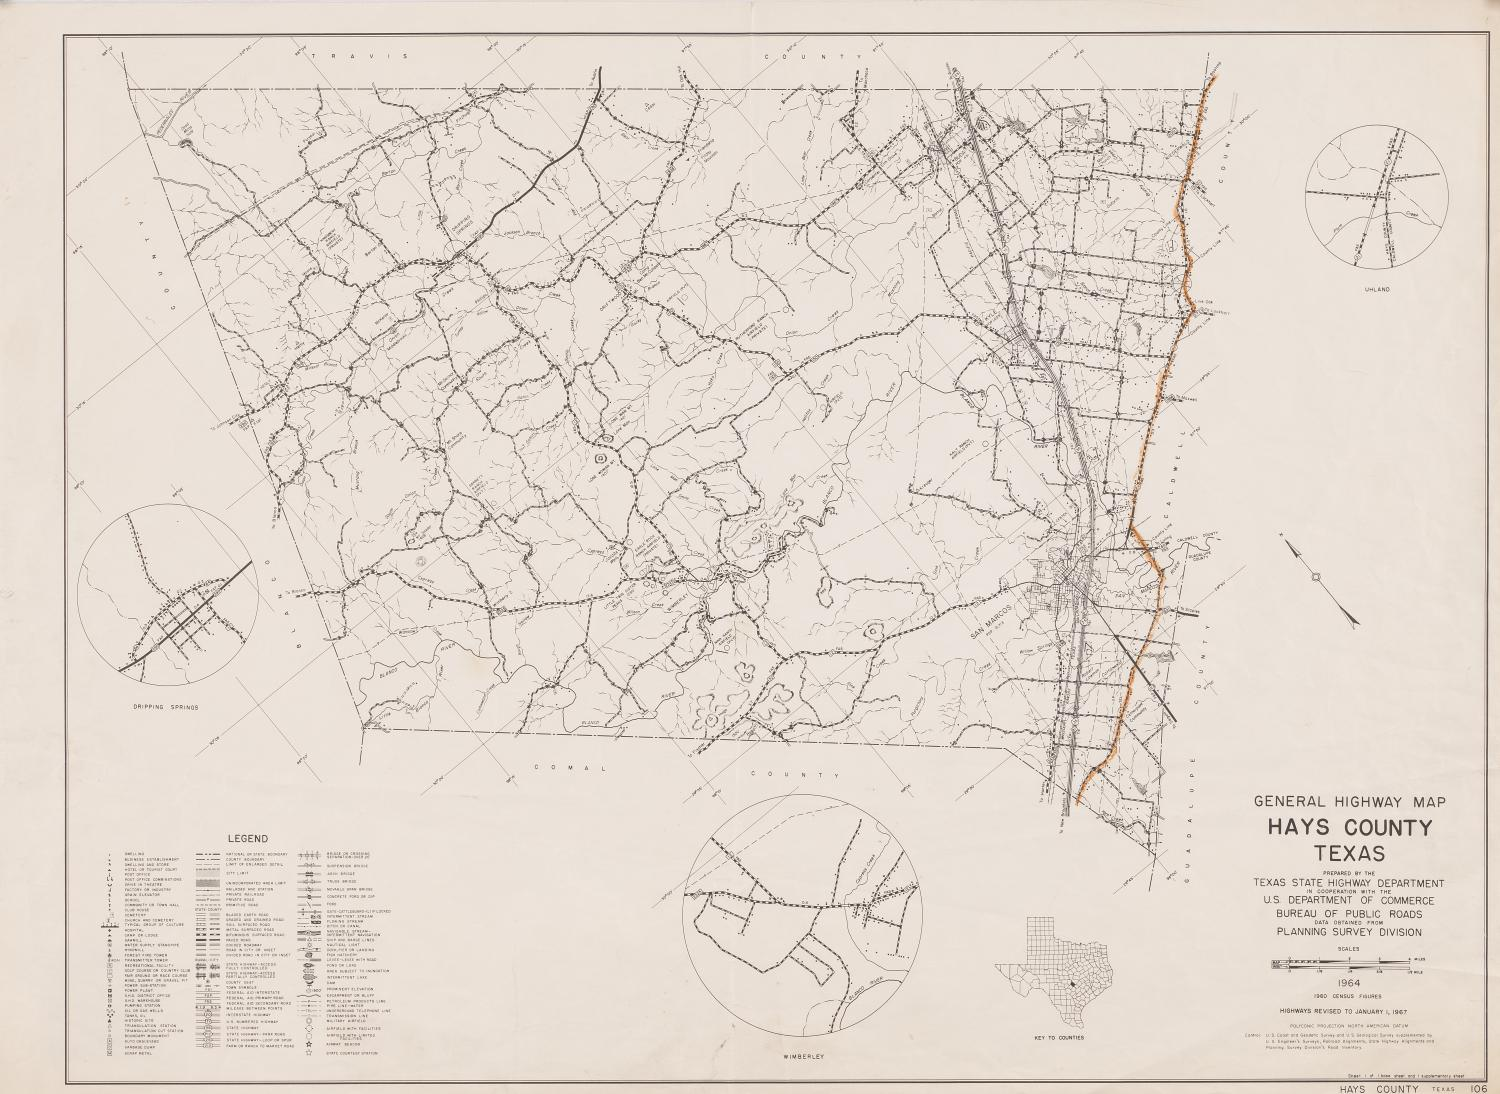 General Highway Map Hays County Texas  The Portal to Texas History